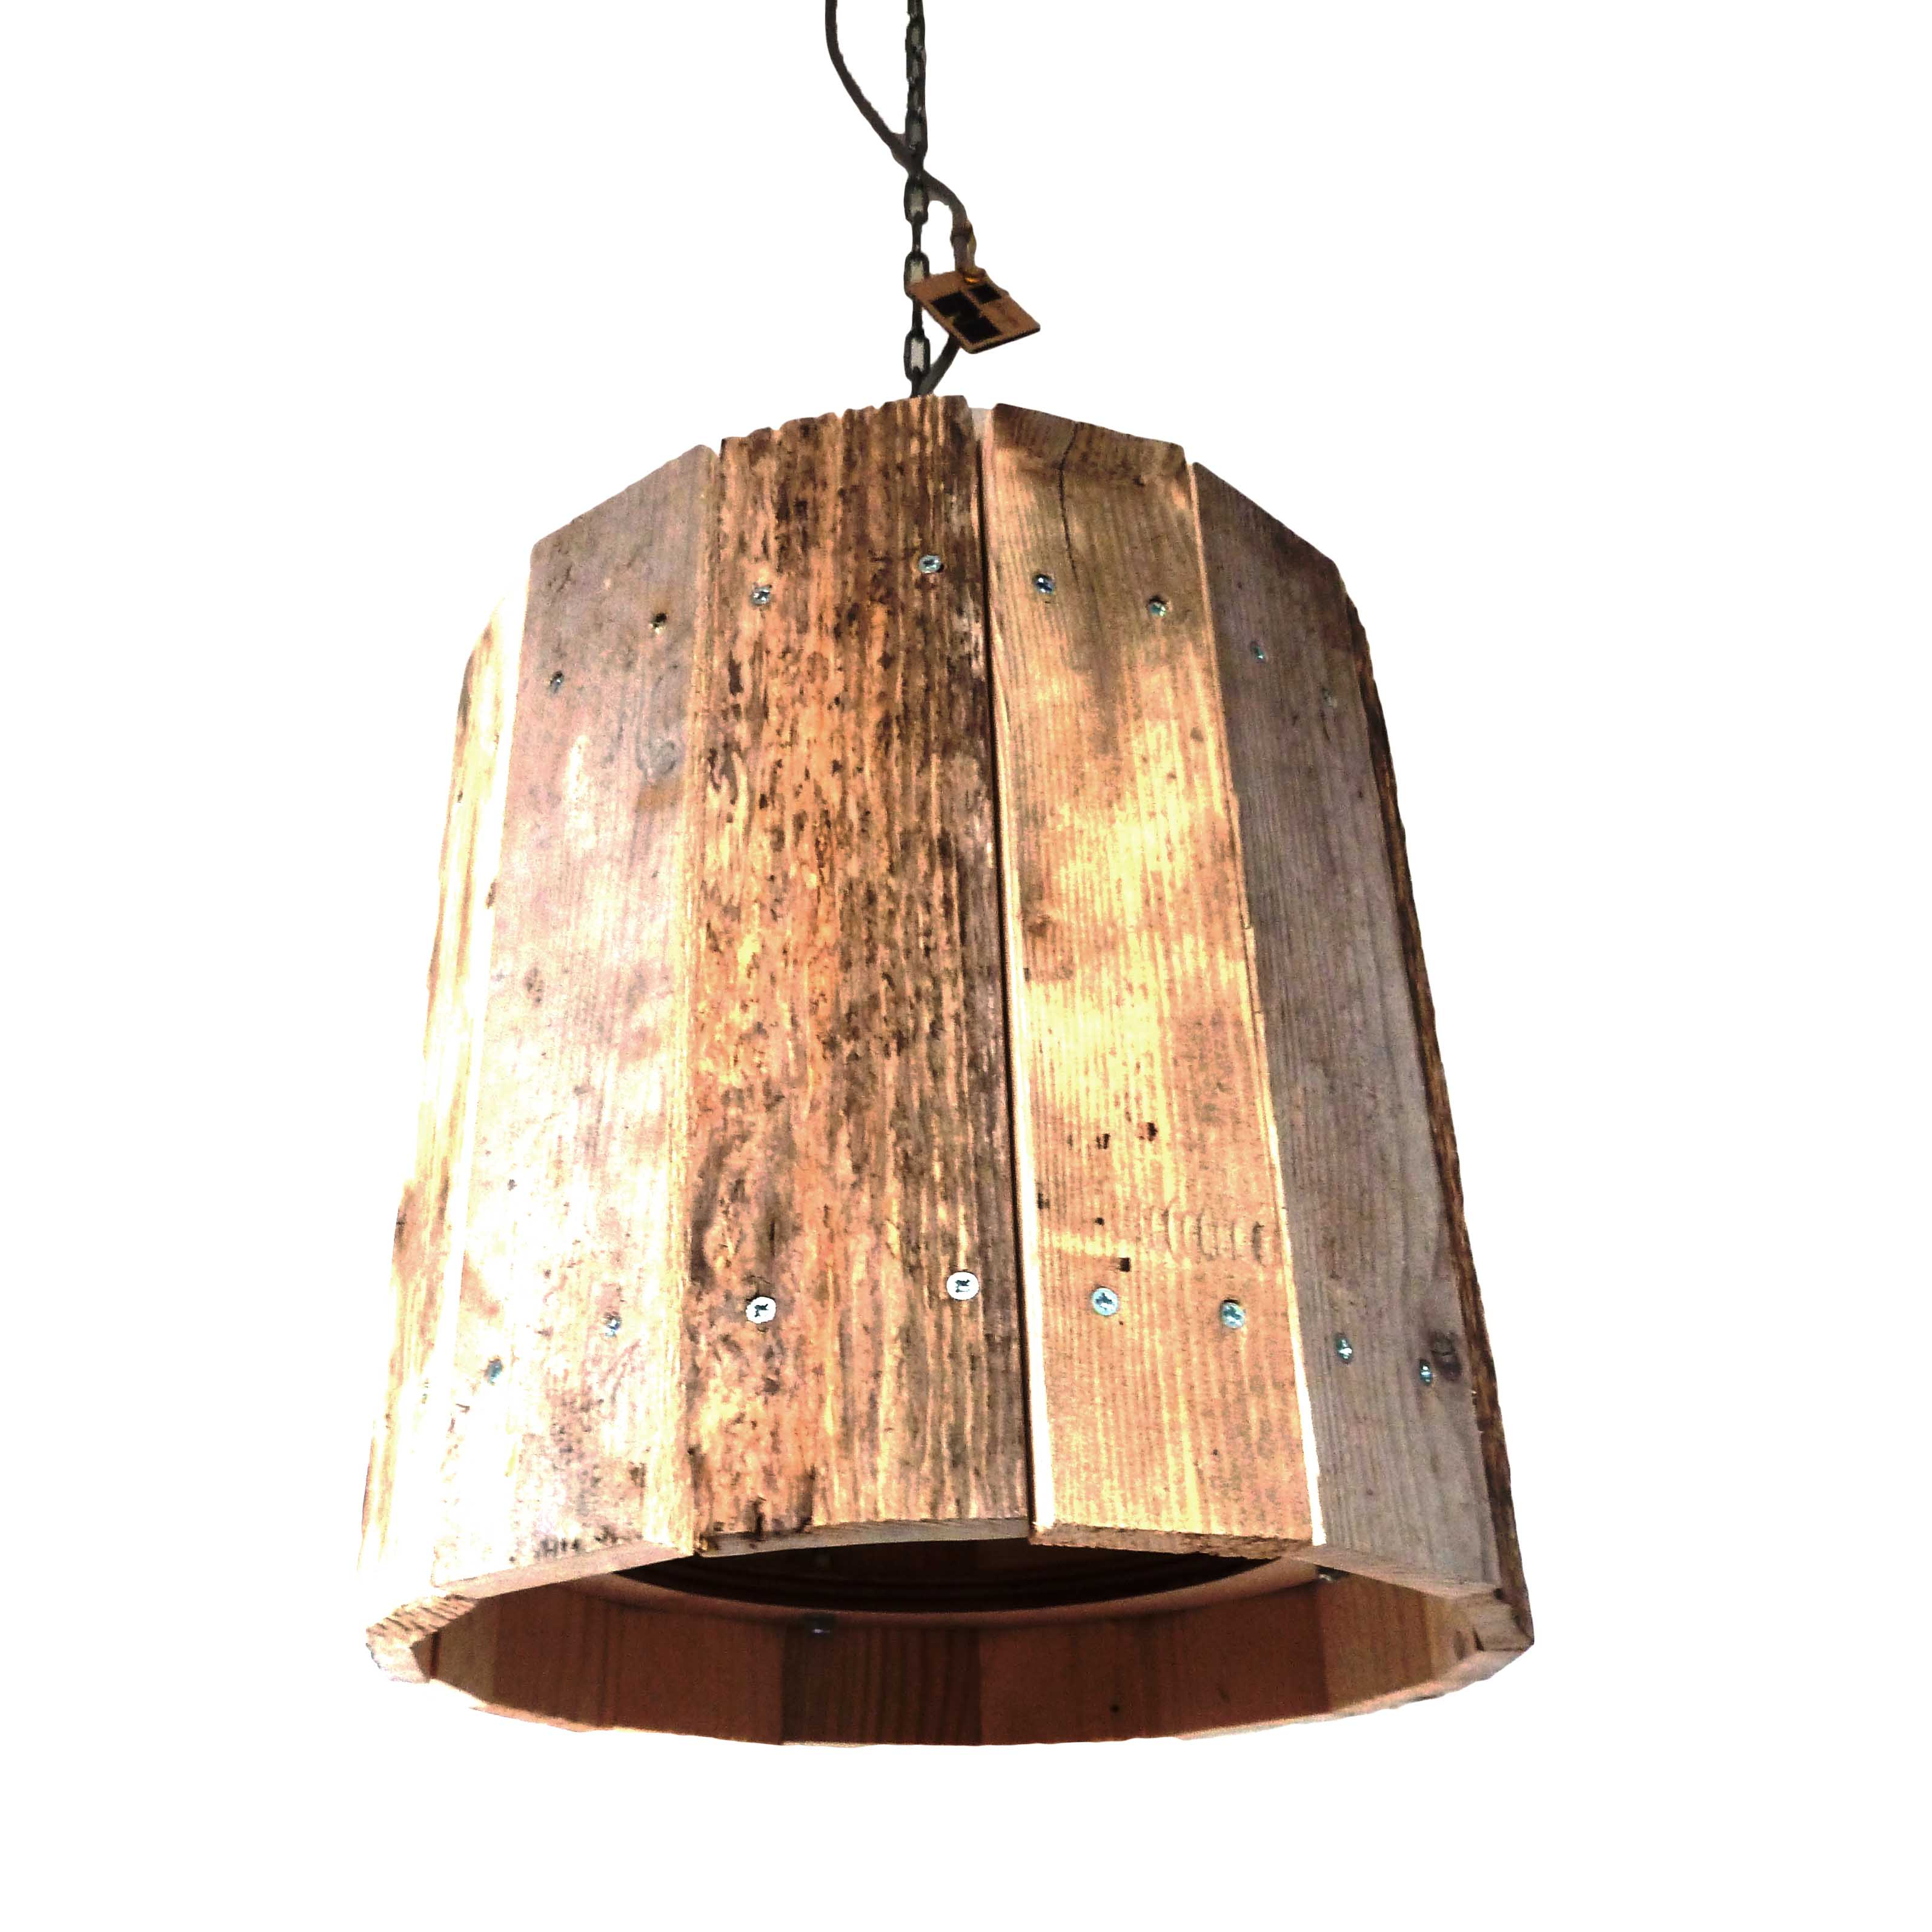 Industri le houten hanglamp 39 pure wood 39 indusigns for Design lamp hout